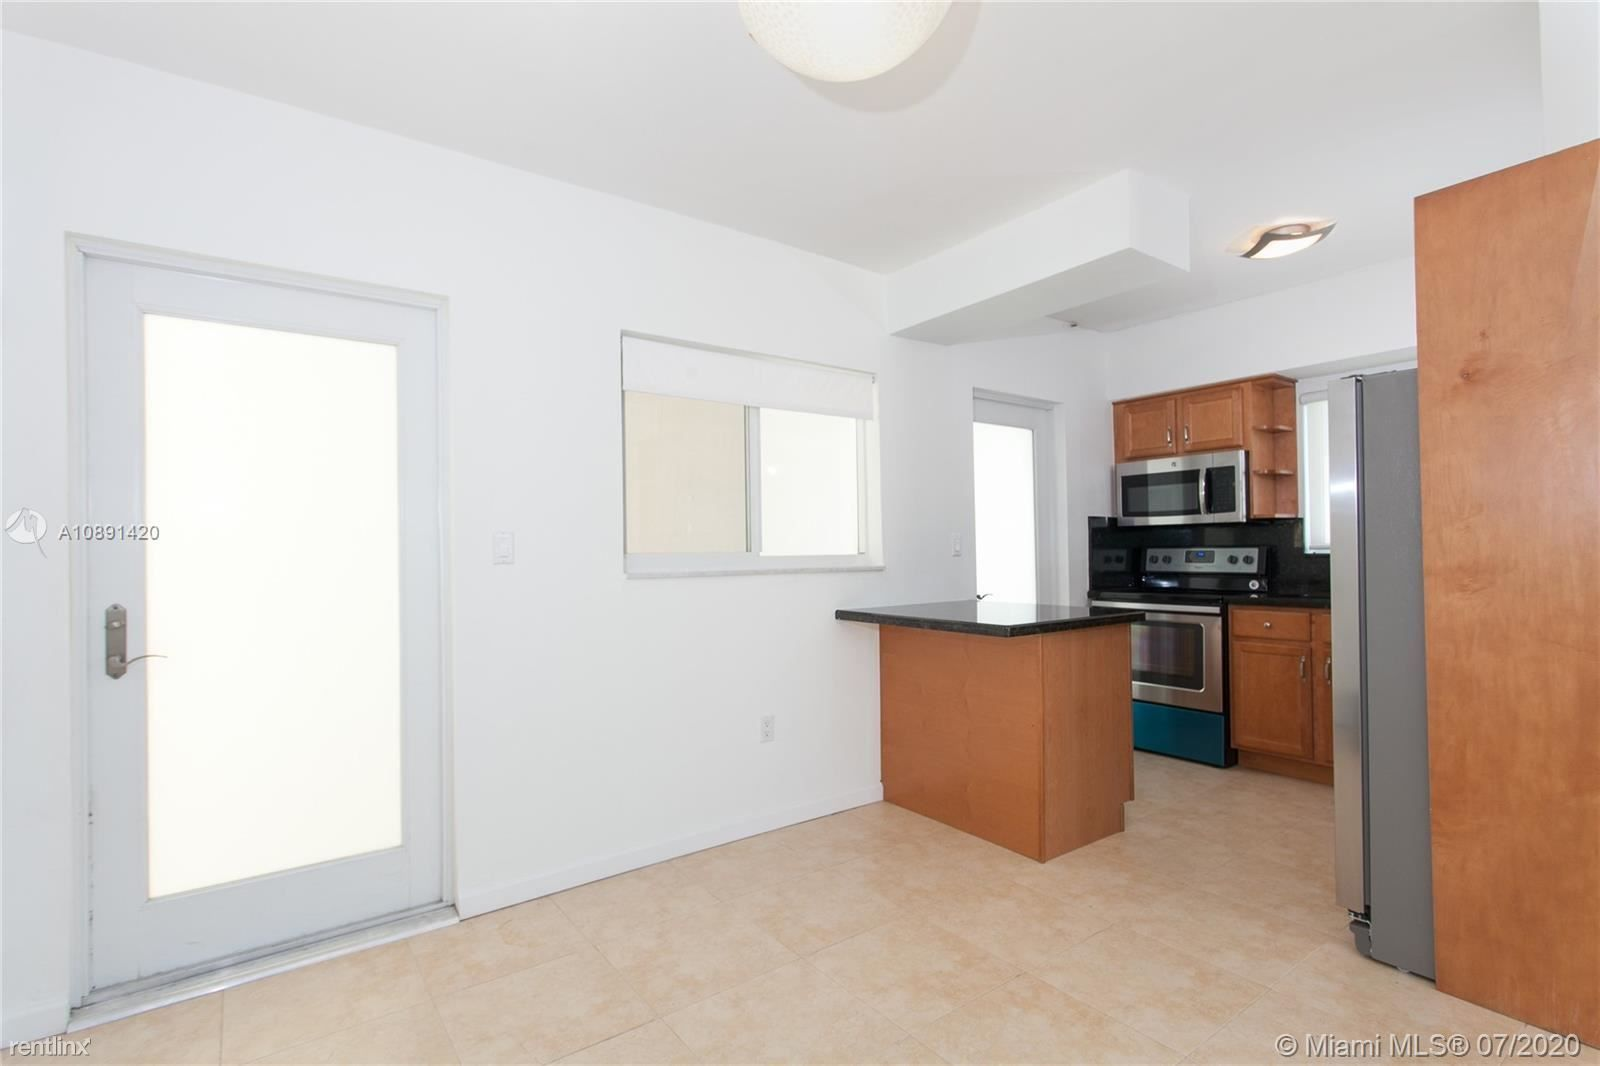 1420 Pennsylvania Ave for rent